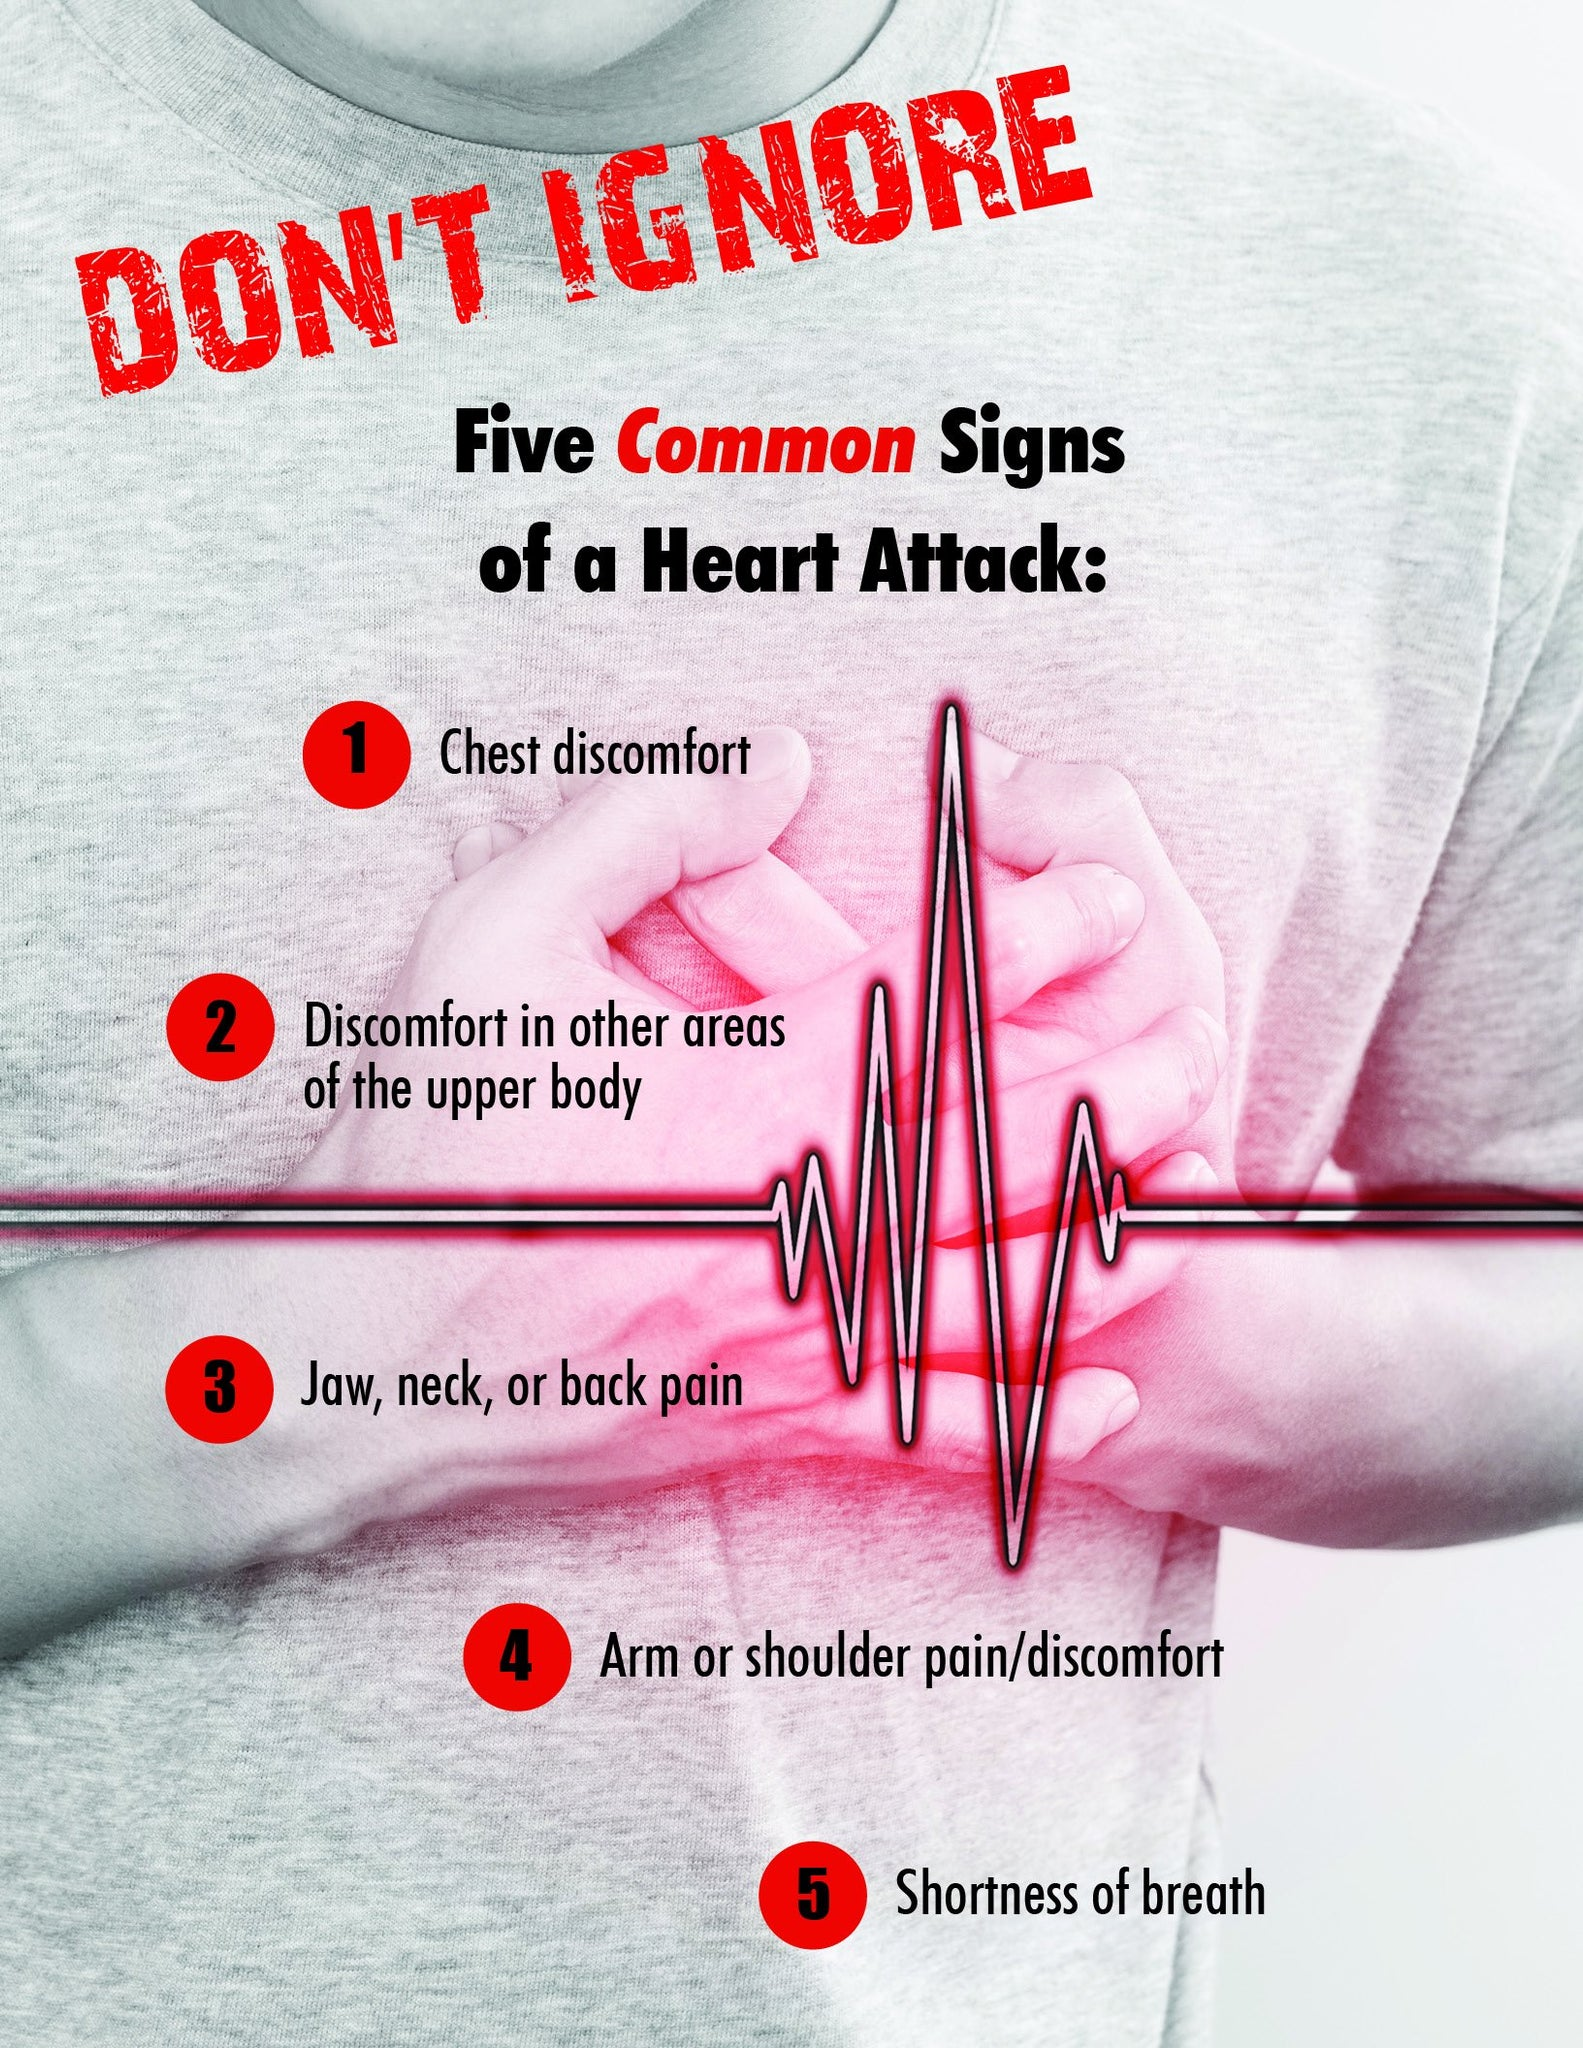 Five Common Signs Of A Heart Attack - Safety Poster New Posters Health & Wellness